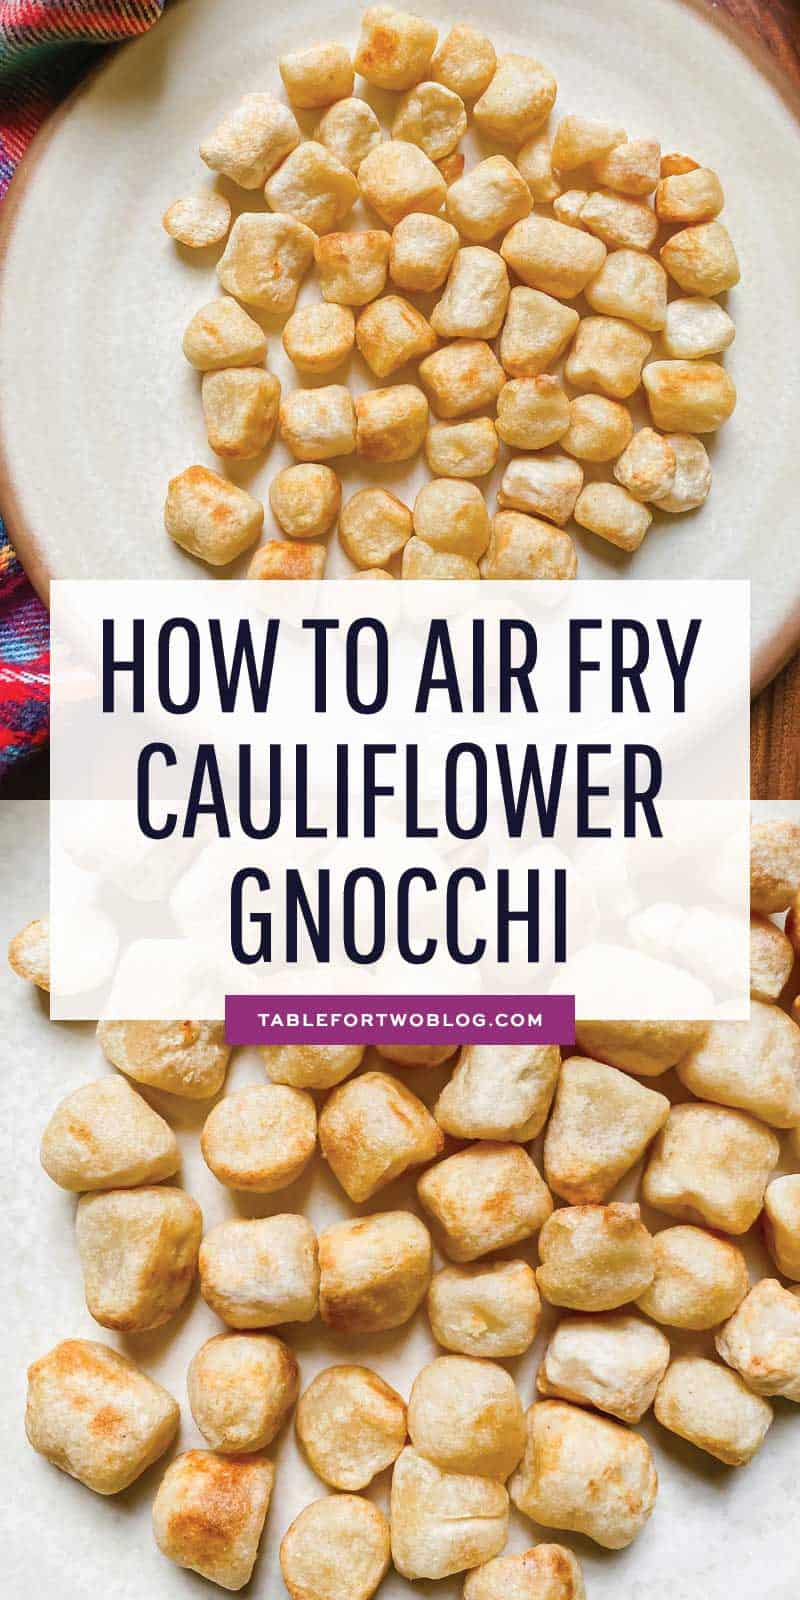 Air frying cauliflower gnocchi is a great way to get that crispy exterior and soft center! #airfryer #airfryerrecipe #cauliflowergnocchi